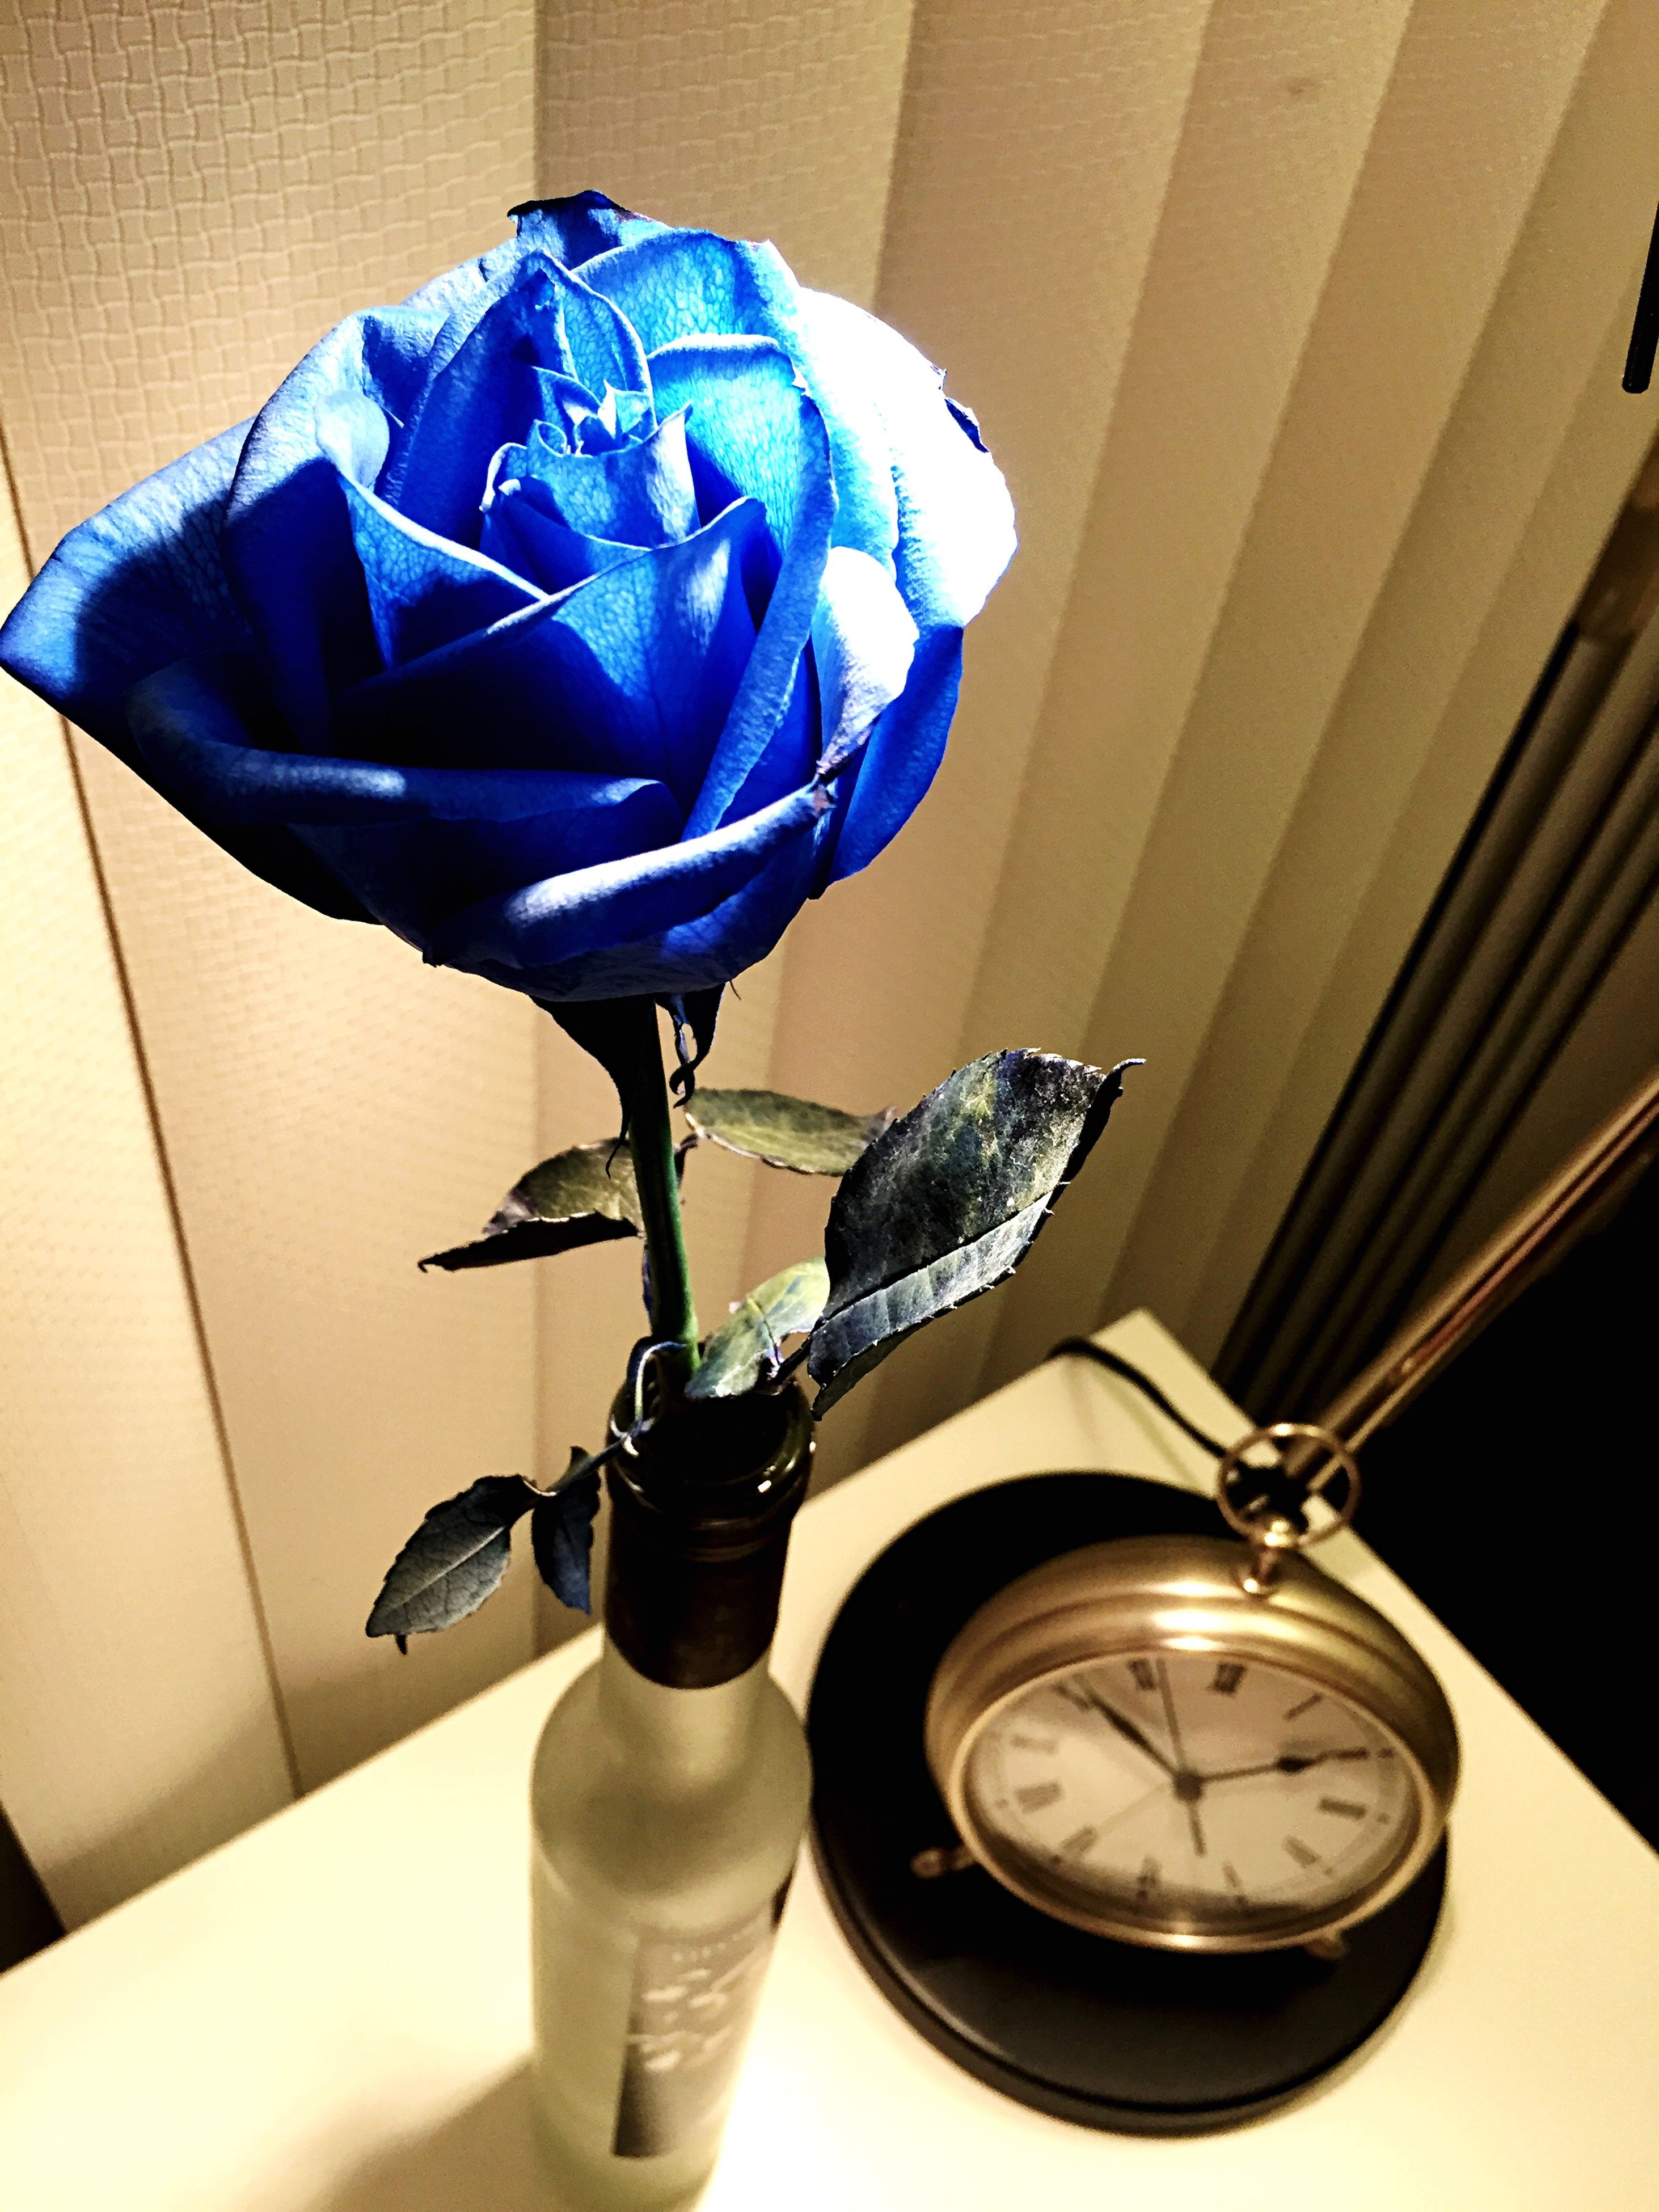 indoors, table, still life, home interior, flower, wall - building feature, domestic room, no people, high angle view, blue, close-up, vase, technology, bathroom, absence, purple, lighting equipment, chair, domestic bathroom, electricity